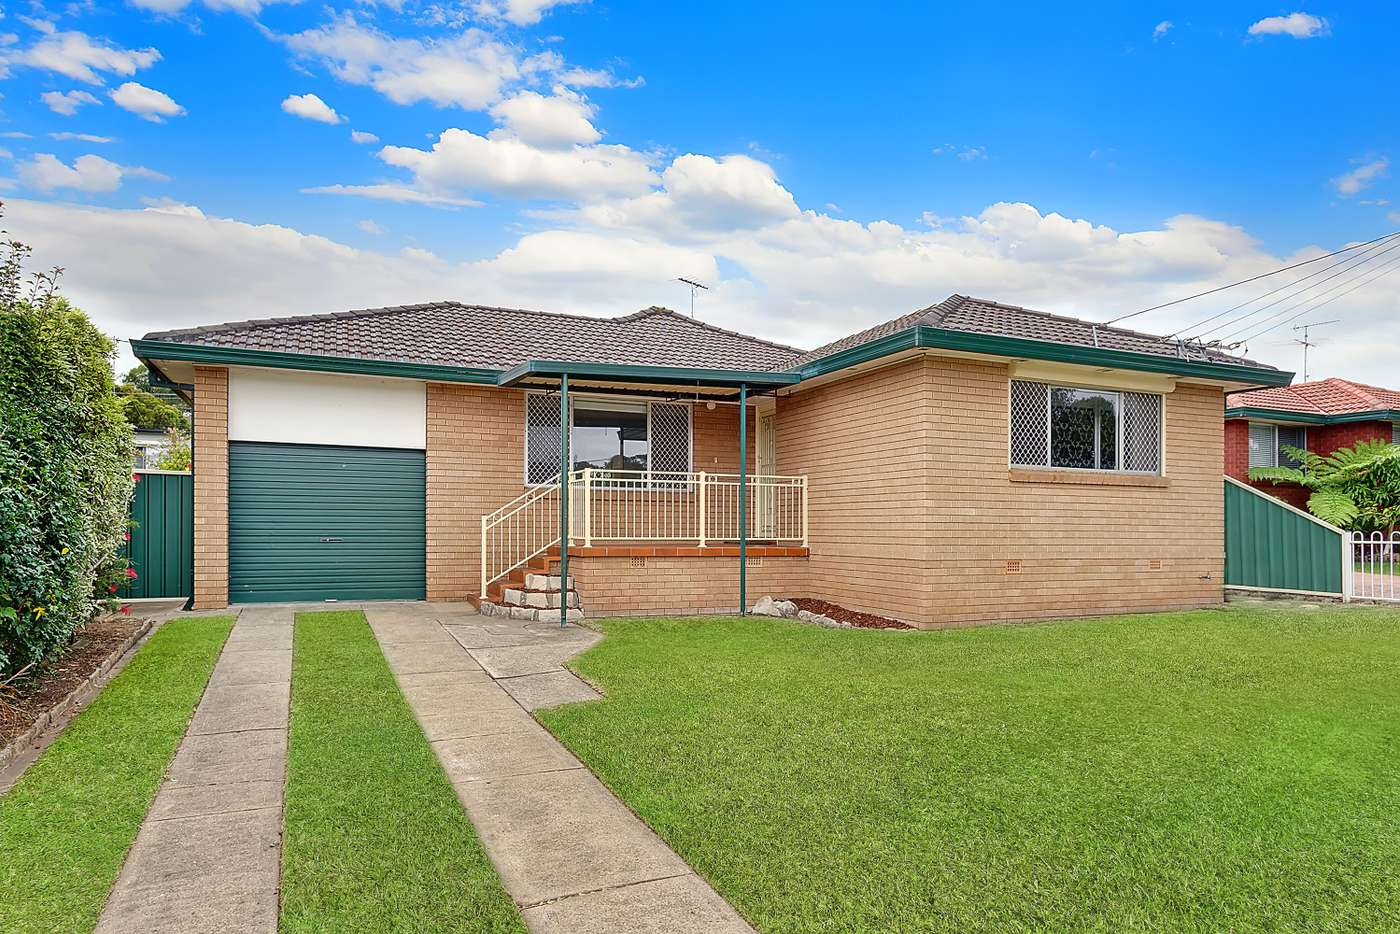 Main view of Homely house listing, 26 Alpha Road, Greystanes NSW 2145